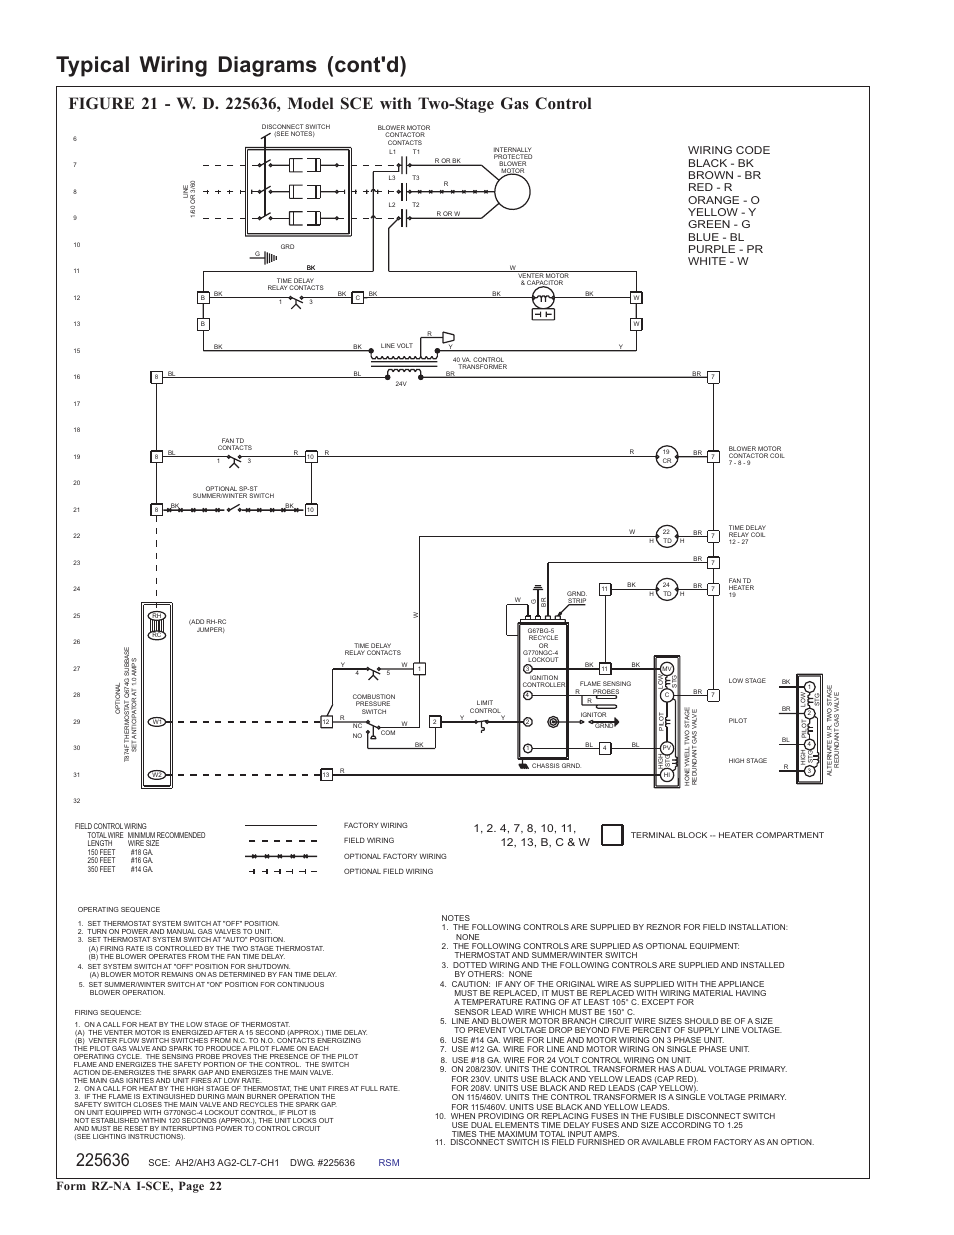 Field Controls Ck63 Wiring Diagram 34 Images For Power Venter Reznor Sce Unit Installation Manual Page22 Diagrams